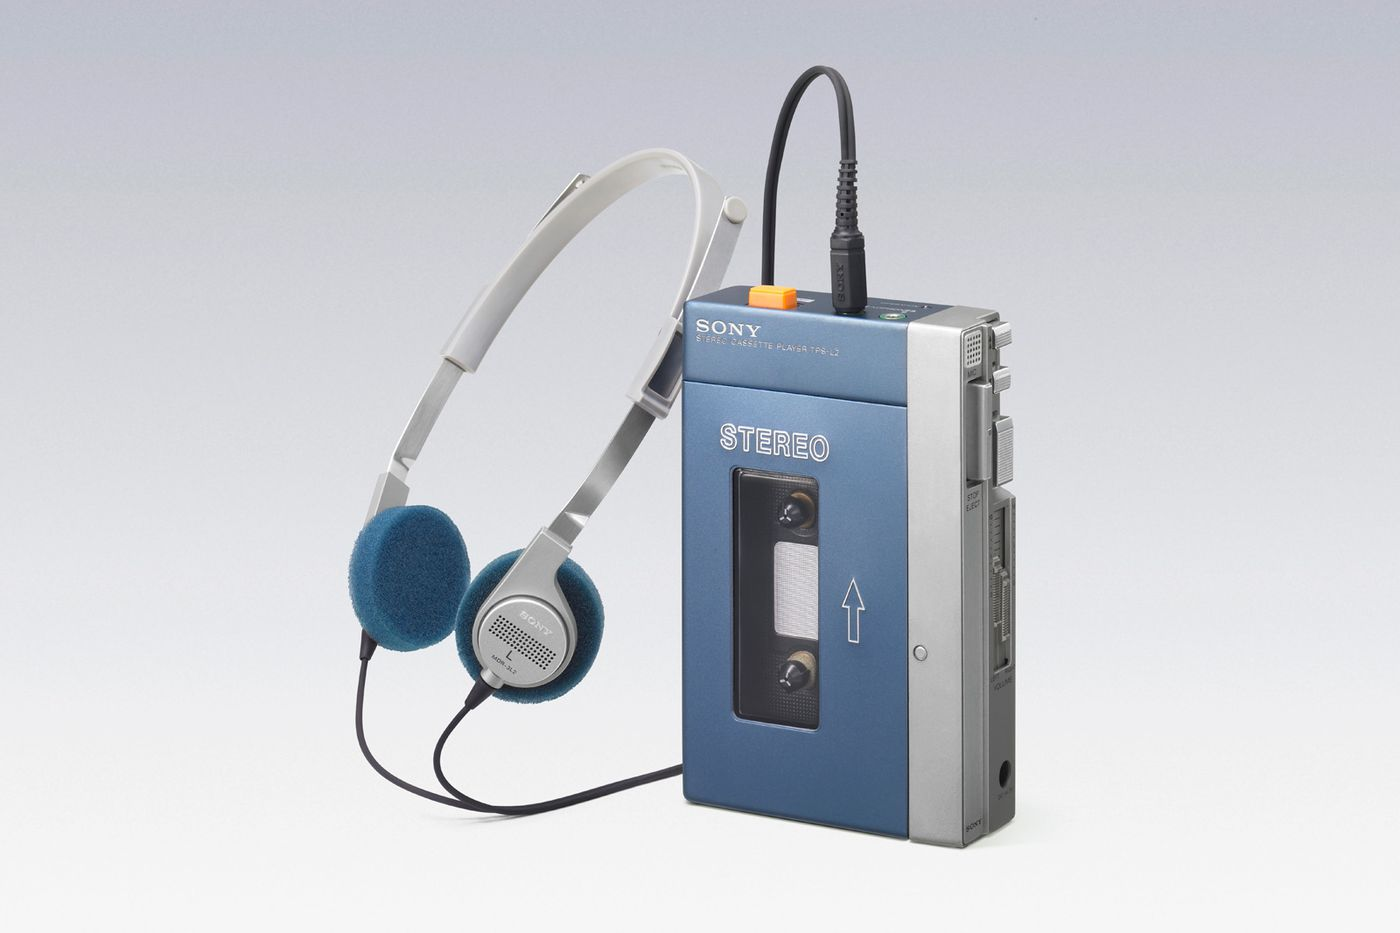 The history of the Walkman: 35 years of iconic music players - The ...